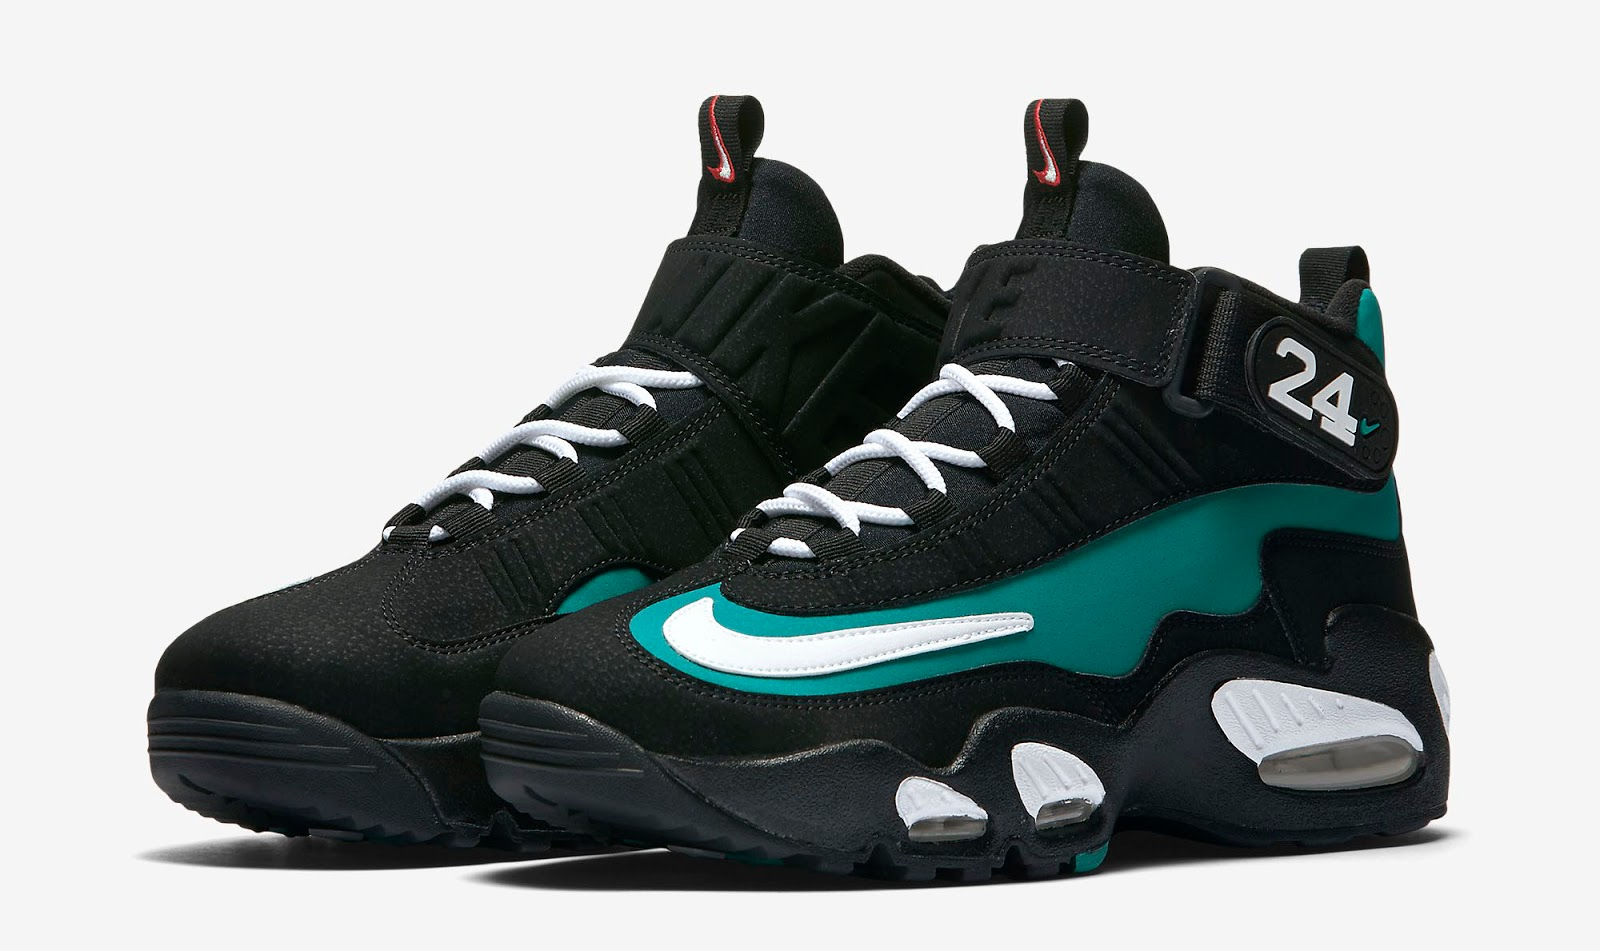 best sneakers 4a470 21c4f In celebration of Ken Griffey Jr. getting elected to the 2016 Class of the  National Baseball Hall of Fame, Nike Sportswear is set to bring back his  first ...